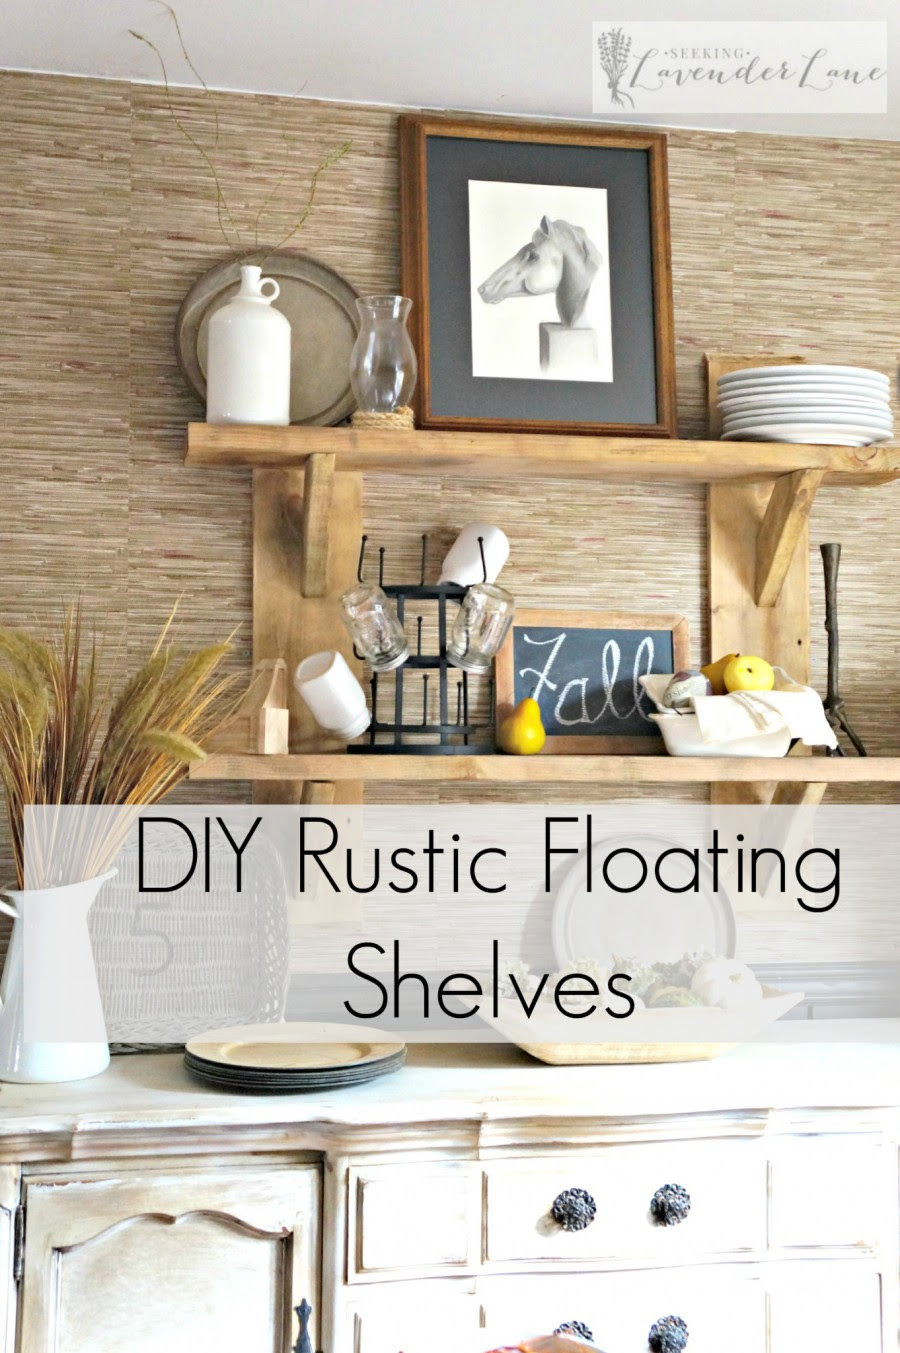 DIY-Rustic-Floating-Shelves-